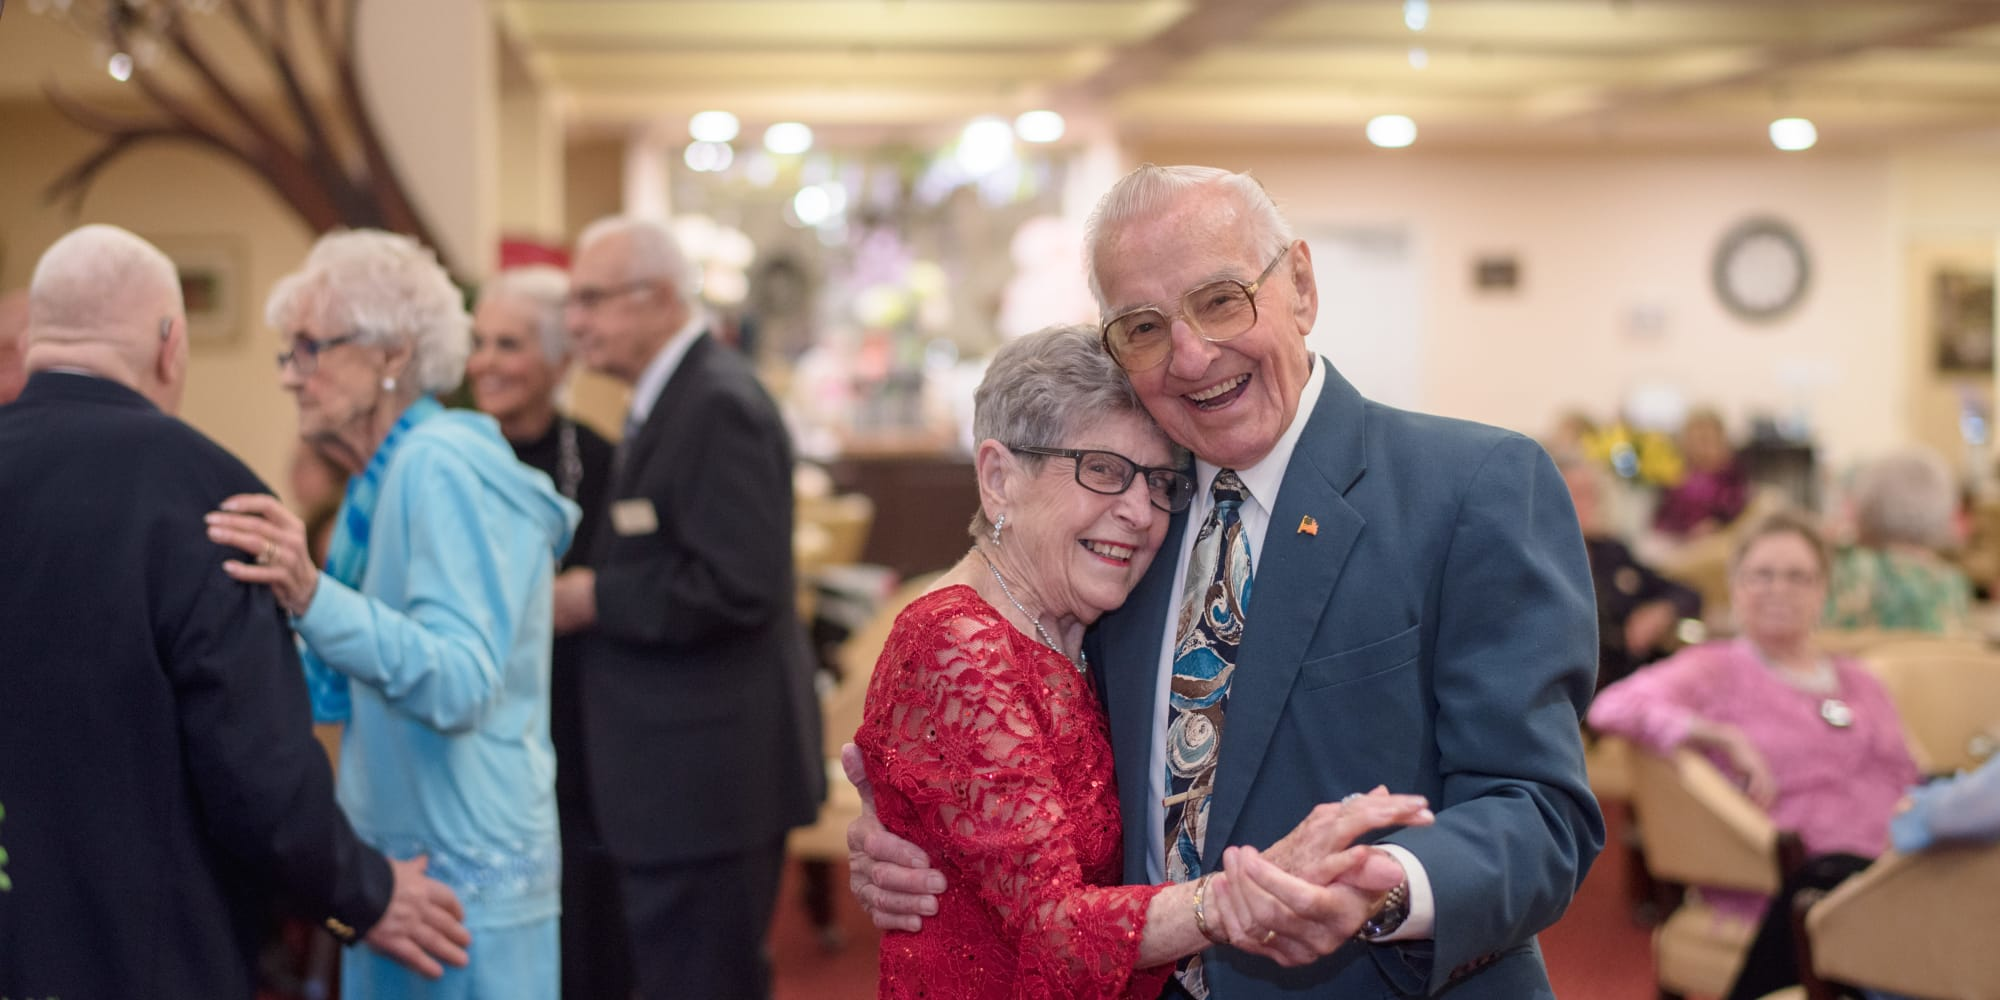 A happy couple dancing together at Steeplechase Retirement Residence in Oxford, Florida